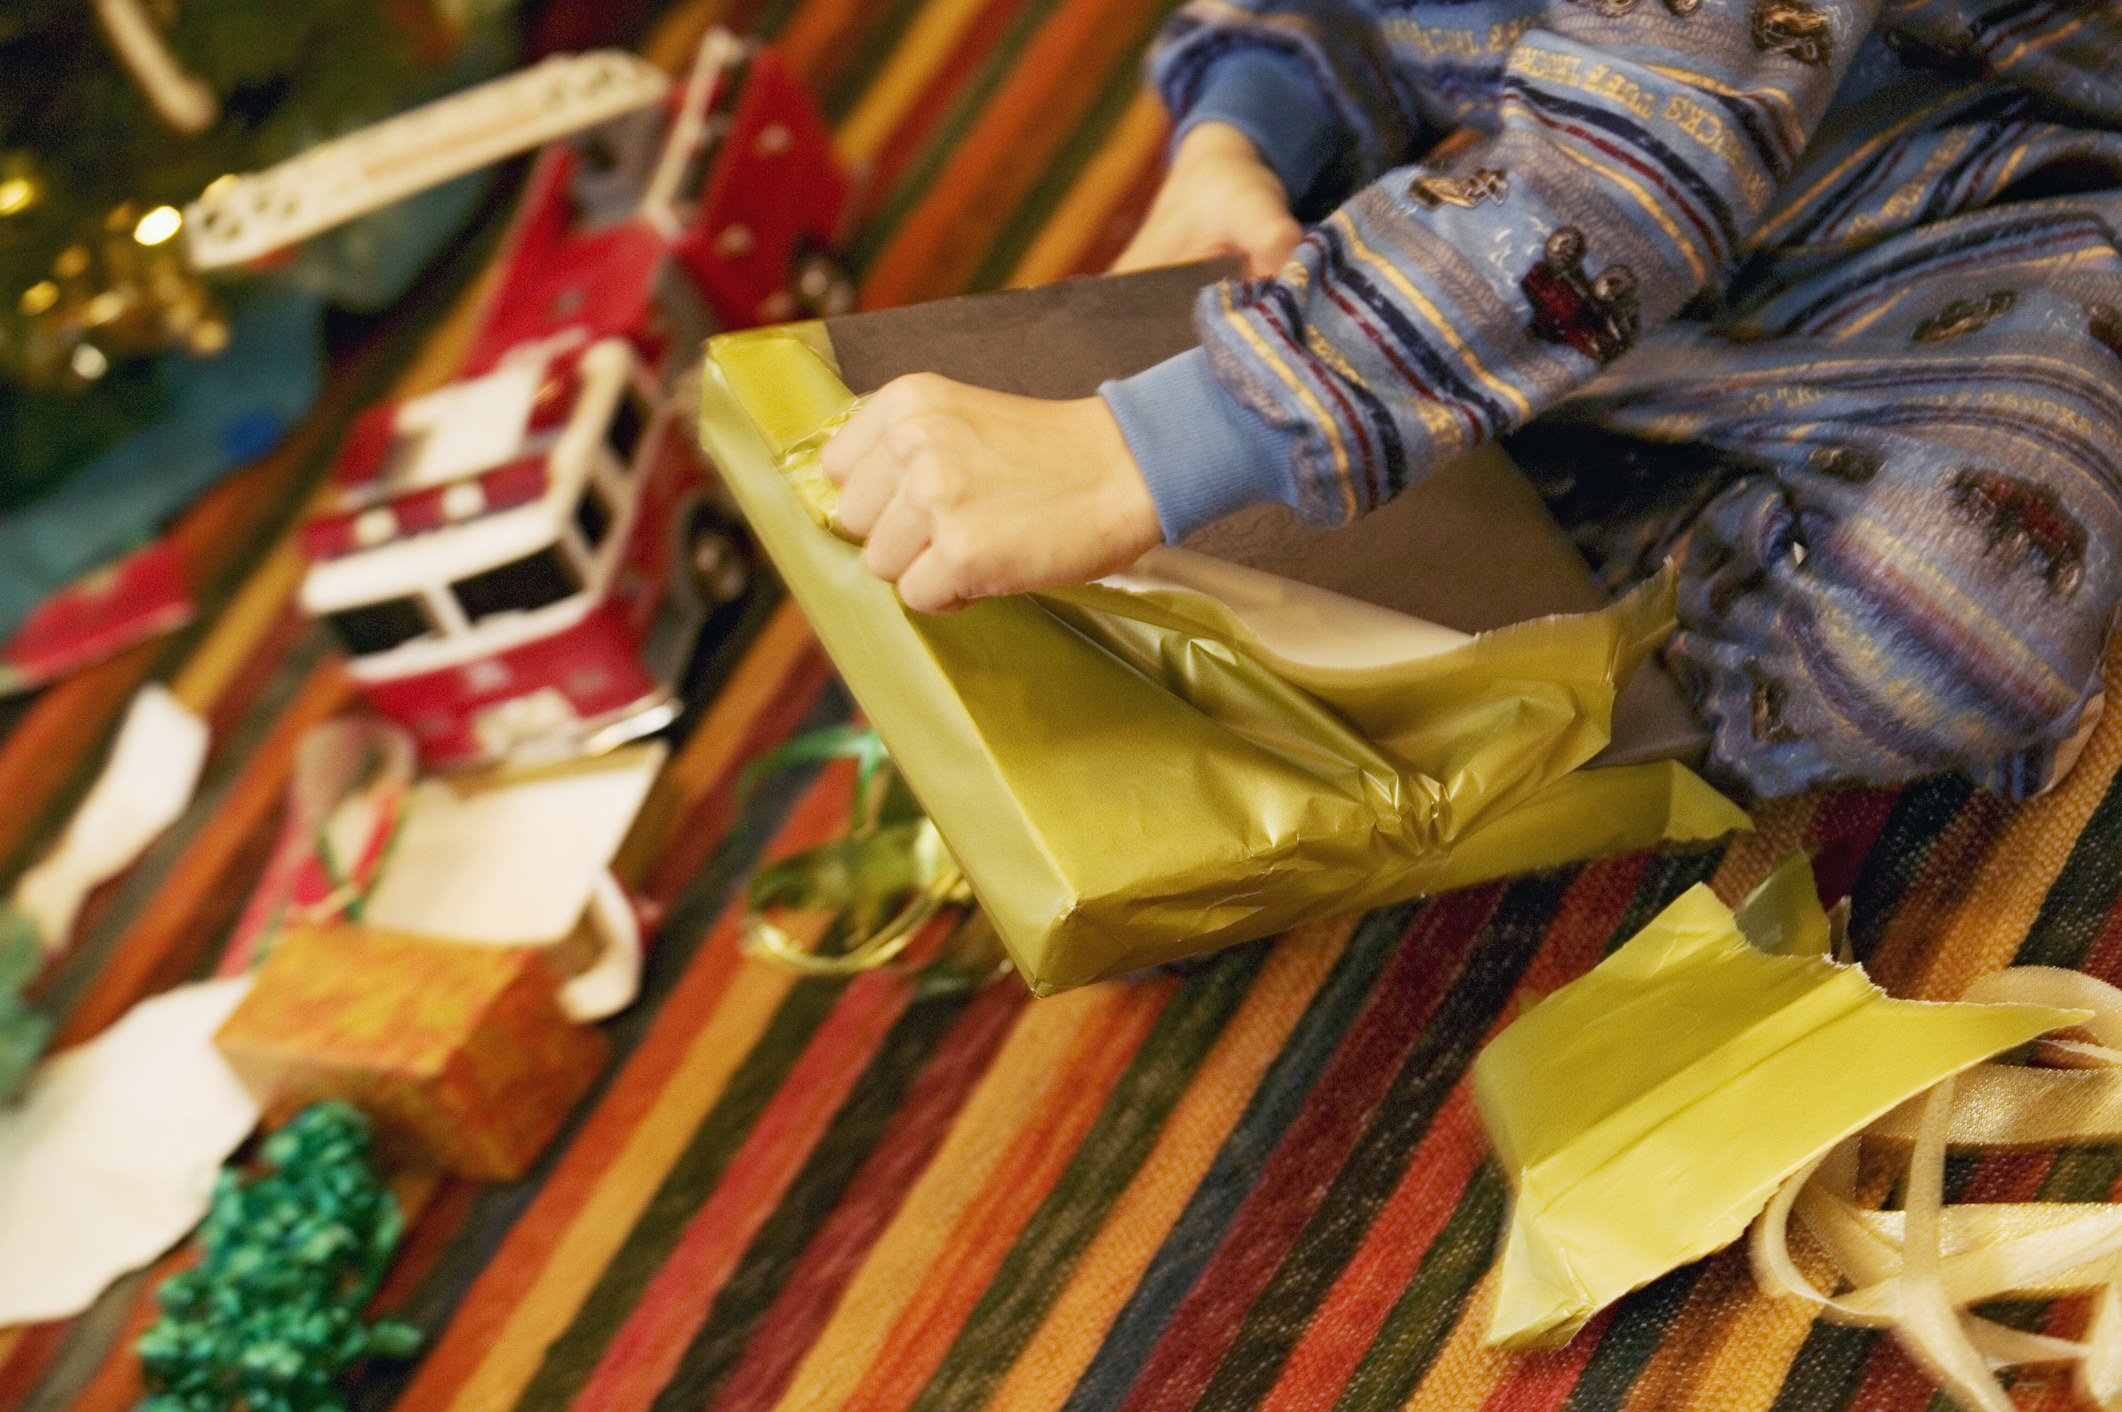 A close-up photo of a kid sitting on the floor opening a Christmas gift